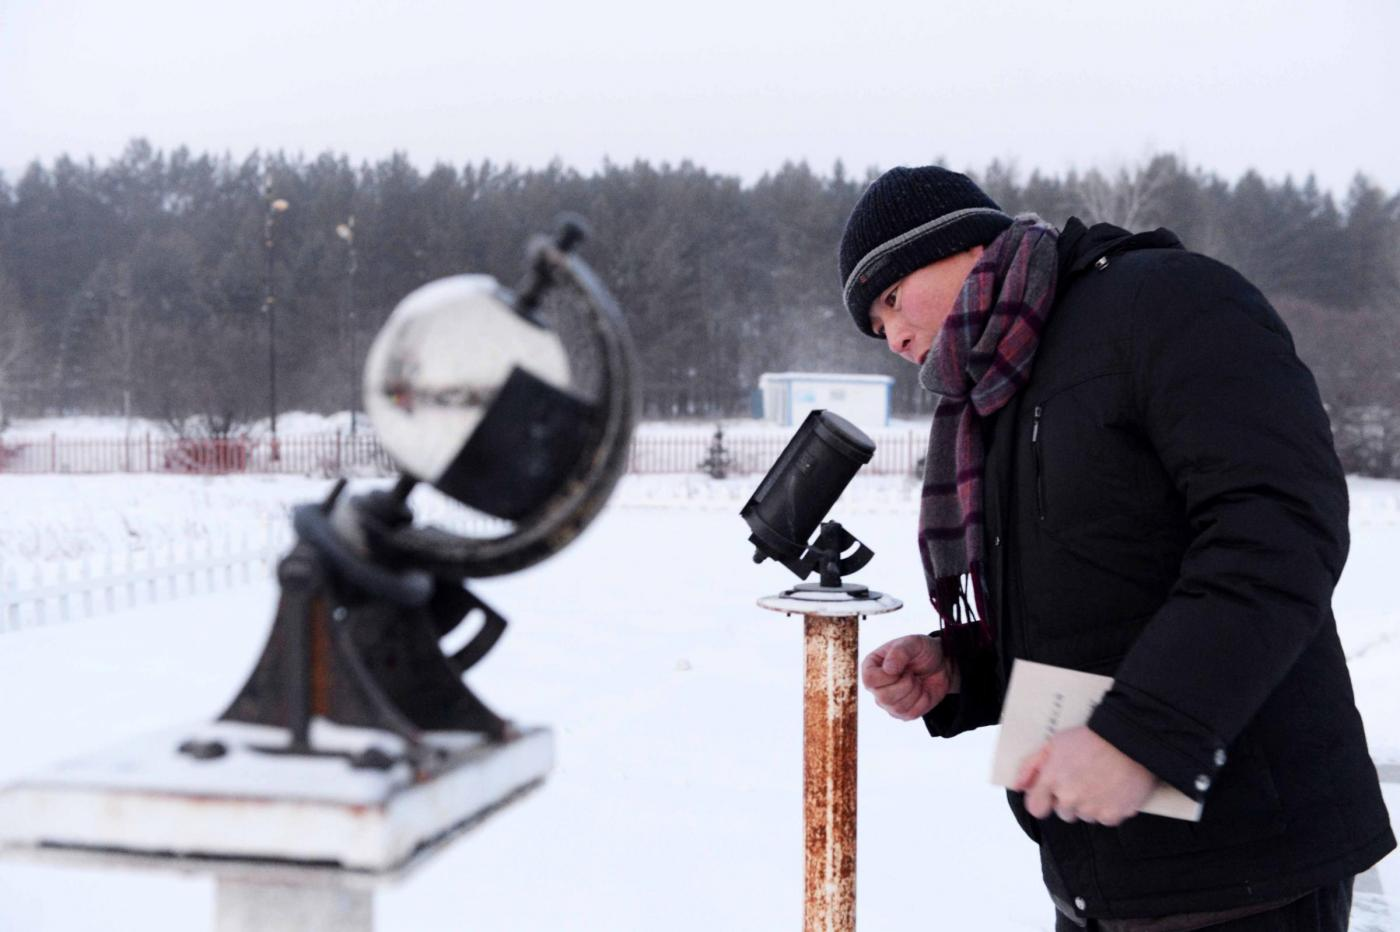 """(160201) -- BEIJICUN, Feb. 1, 2016 (Xinhua) -- Meteorological observer Guo Dayong checks an observation facility in the town of Beijicun, or """"North Pole Village"""", in northeast China's Heilongjiang Province, Jan. 31, 2016. Beijicun, a small town in China's northernmost county of Mohe, is one of the coldest places in the country. The lowest temperature ever recorded here was minus 52.3 degrees Celsius. Only four people work at the Beijicun National Meteorological Observation Station now. (Xinhua/Wang Kai) (wyo)"""